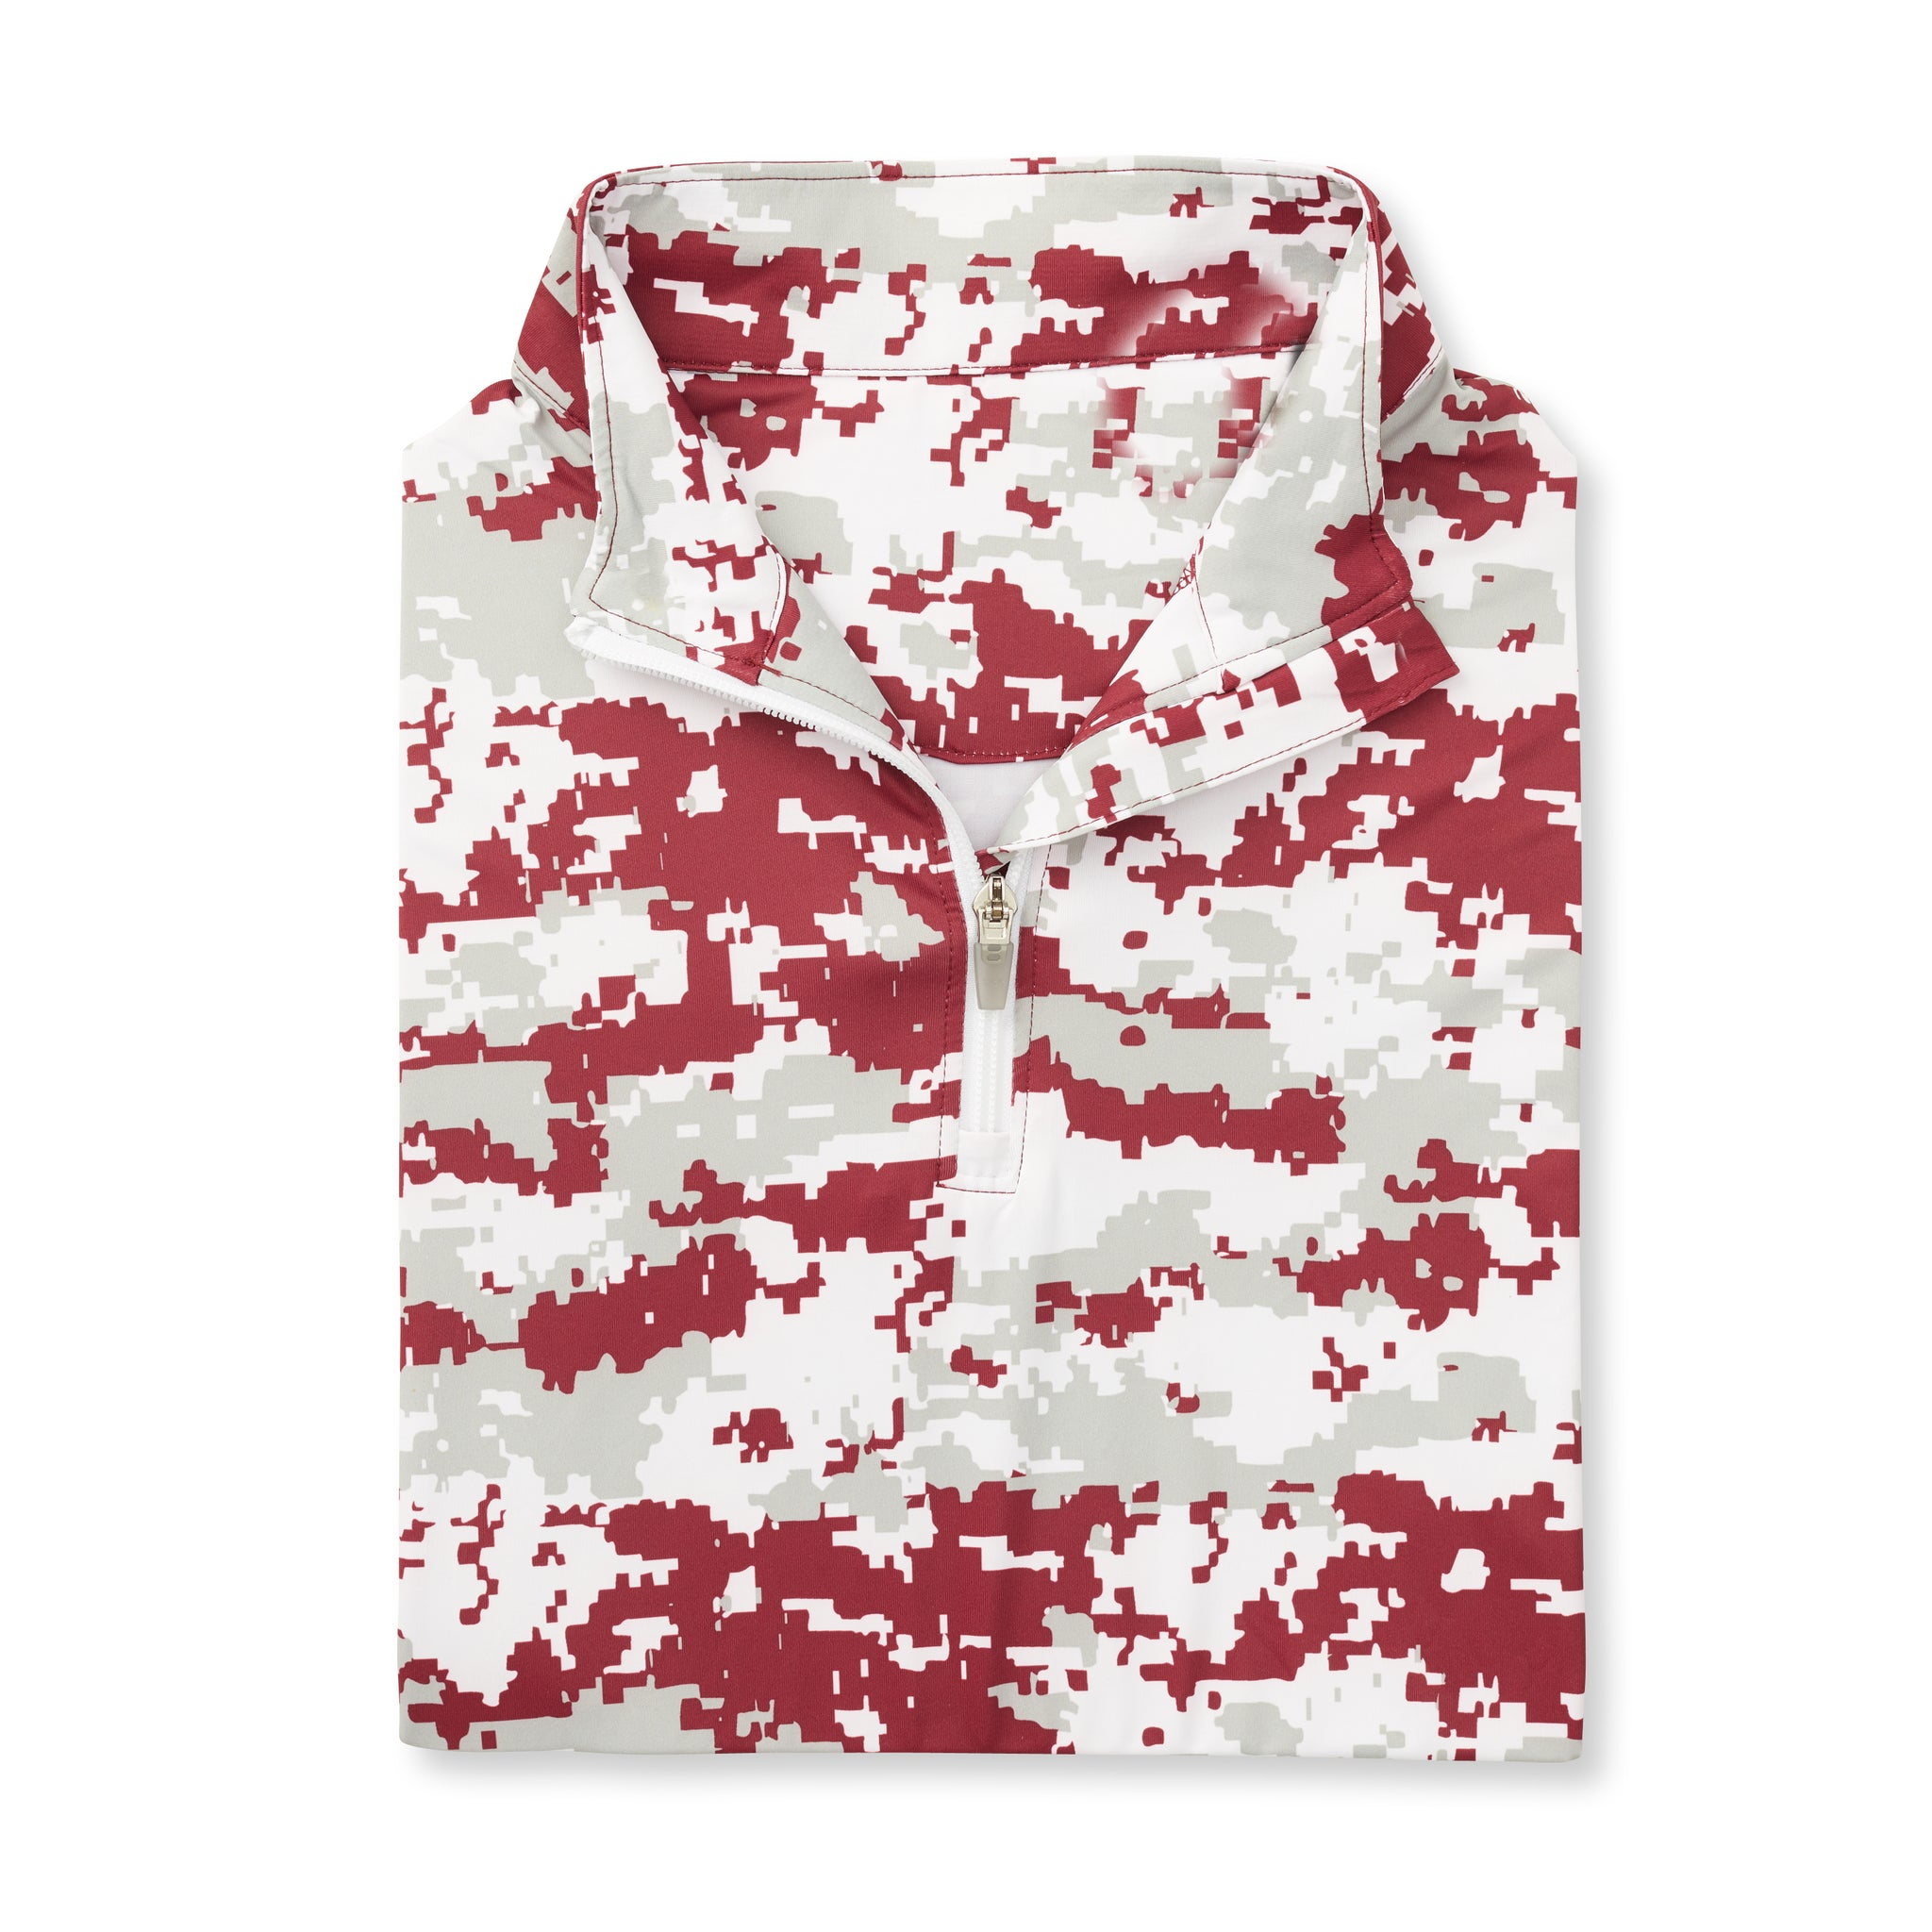 Womens Digital Camo Half Zip - Merlot IS76005W